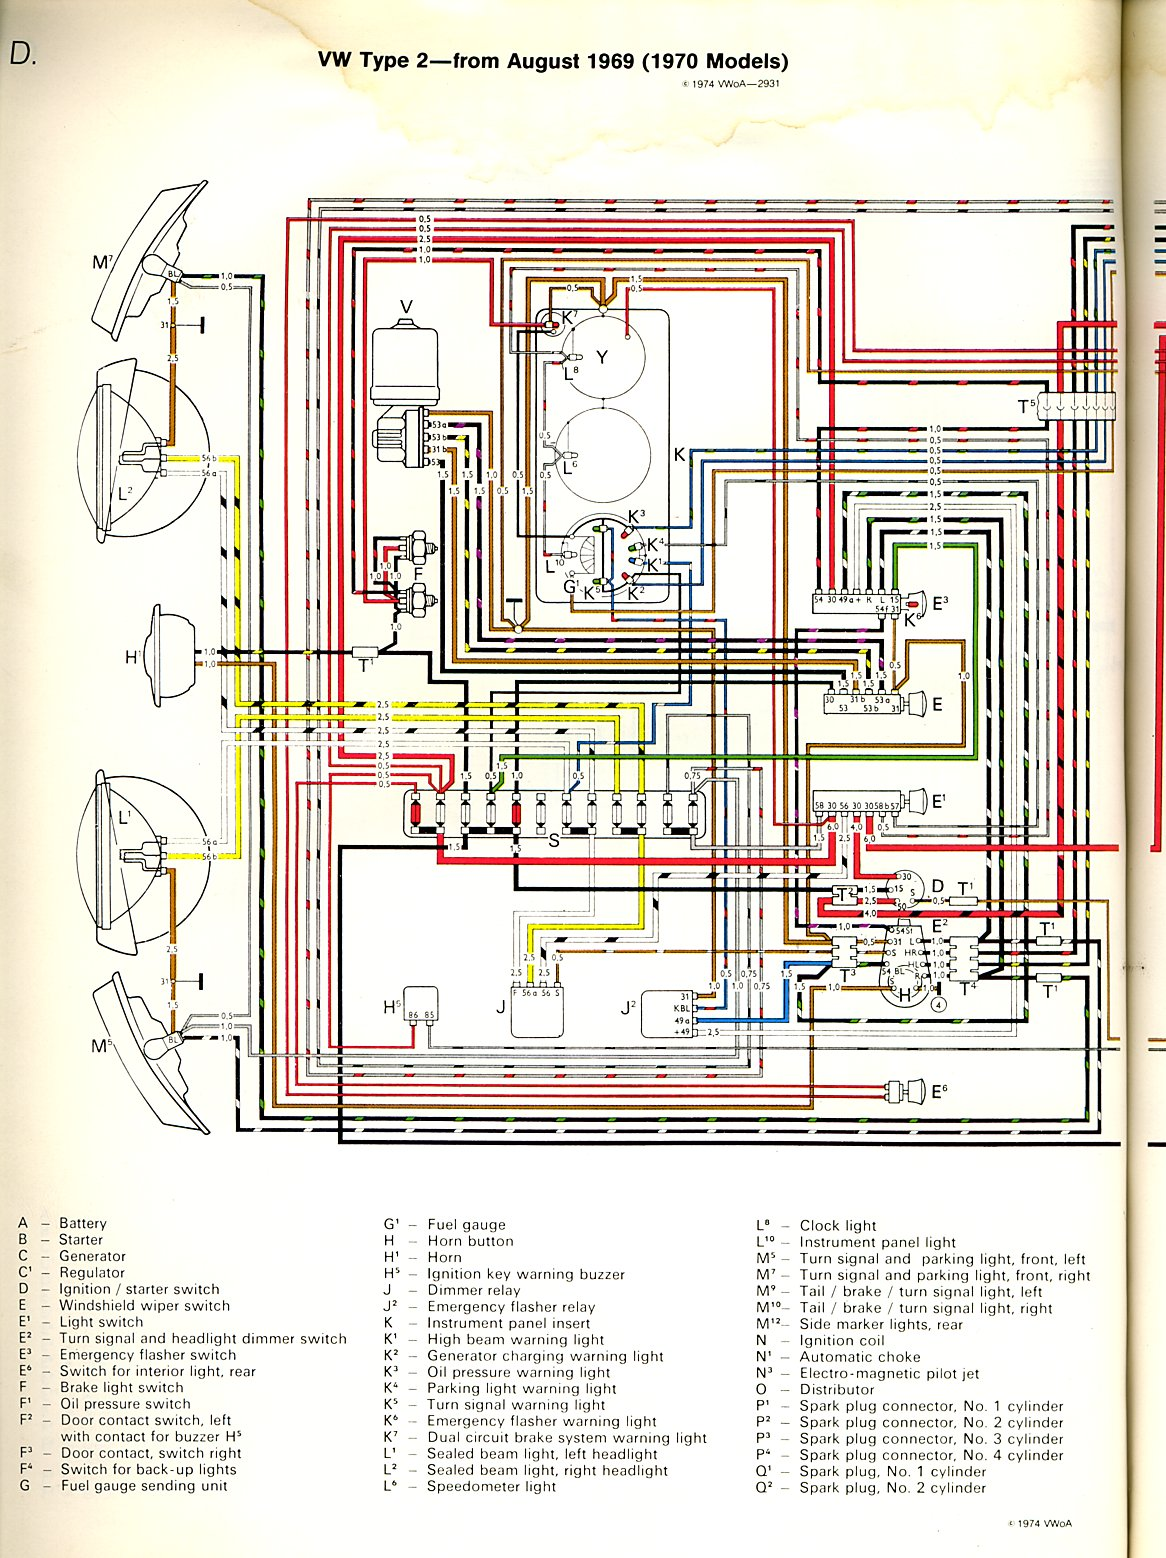 baybus_70a vw bus wiring diagram 1965 vw bus wiring diagram \u2022 wiring diagrams VW Alternator Hook Up at bayanpartner.co